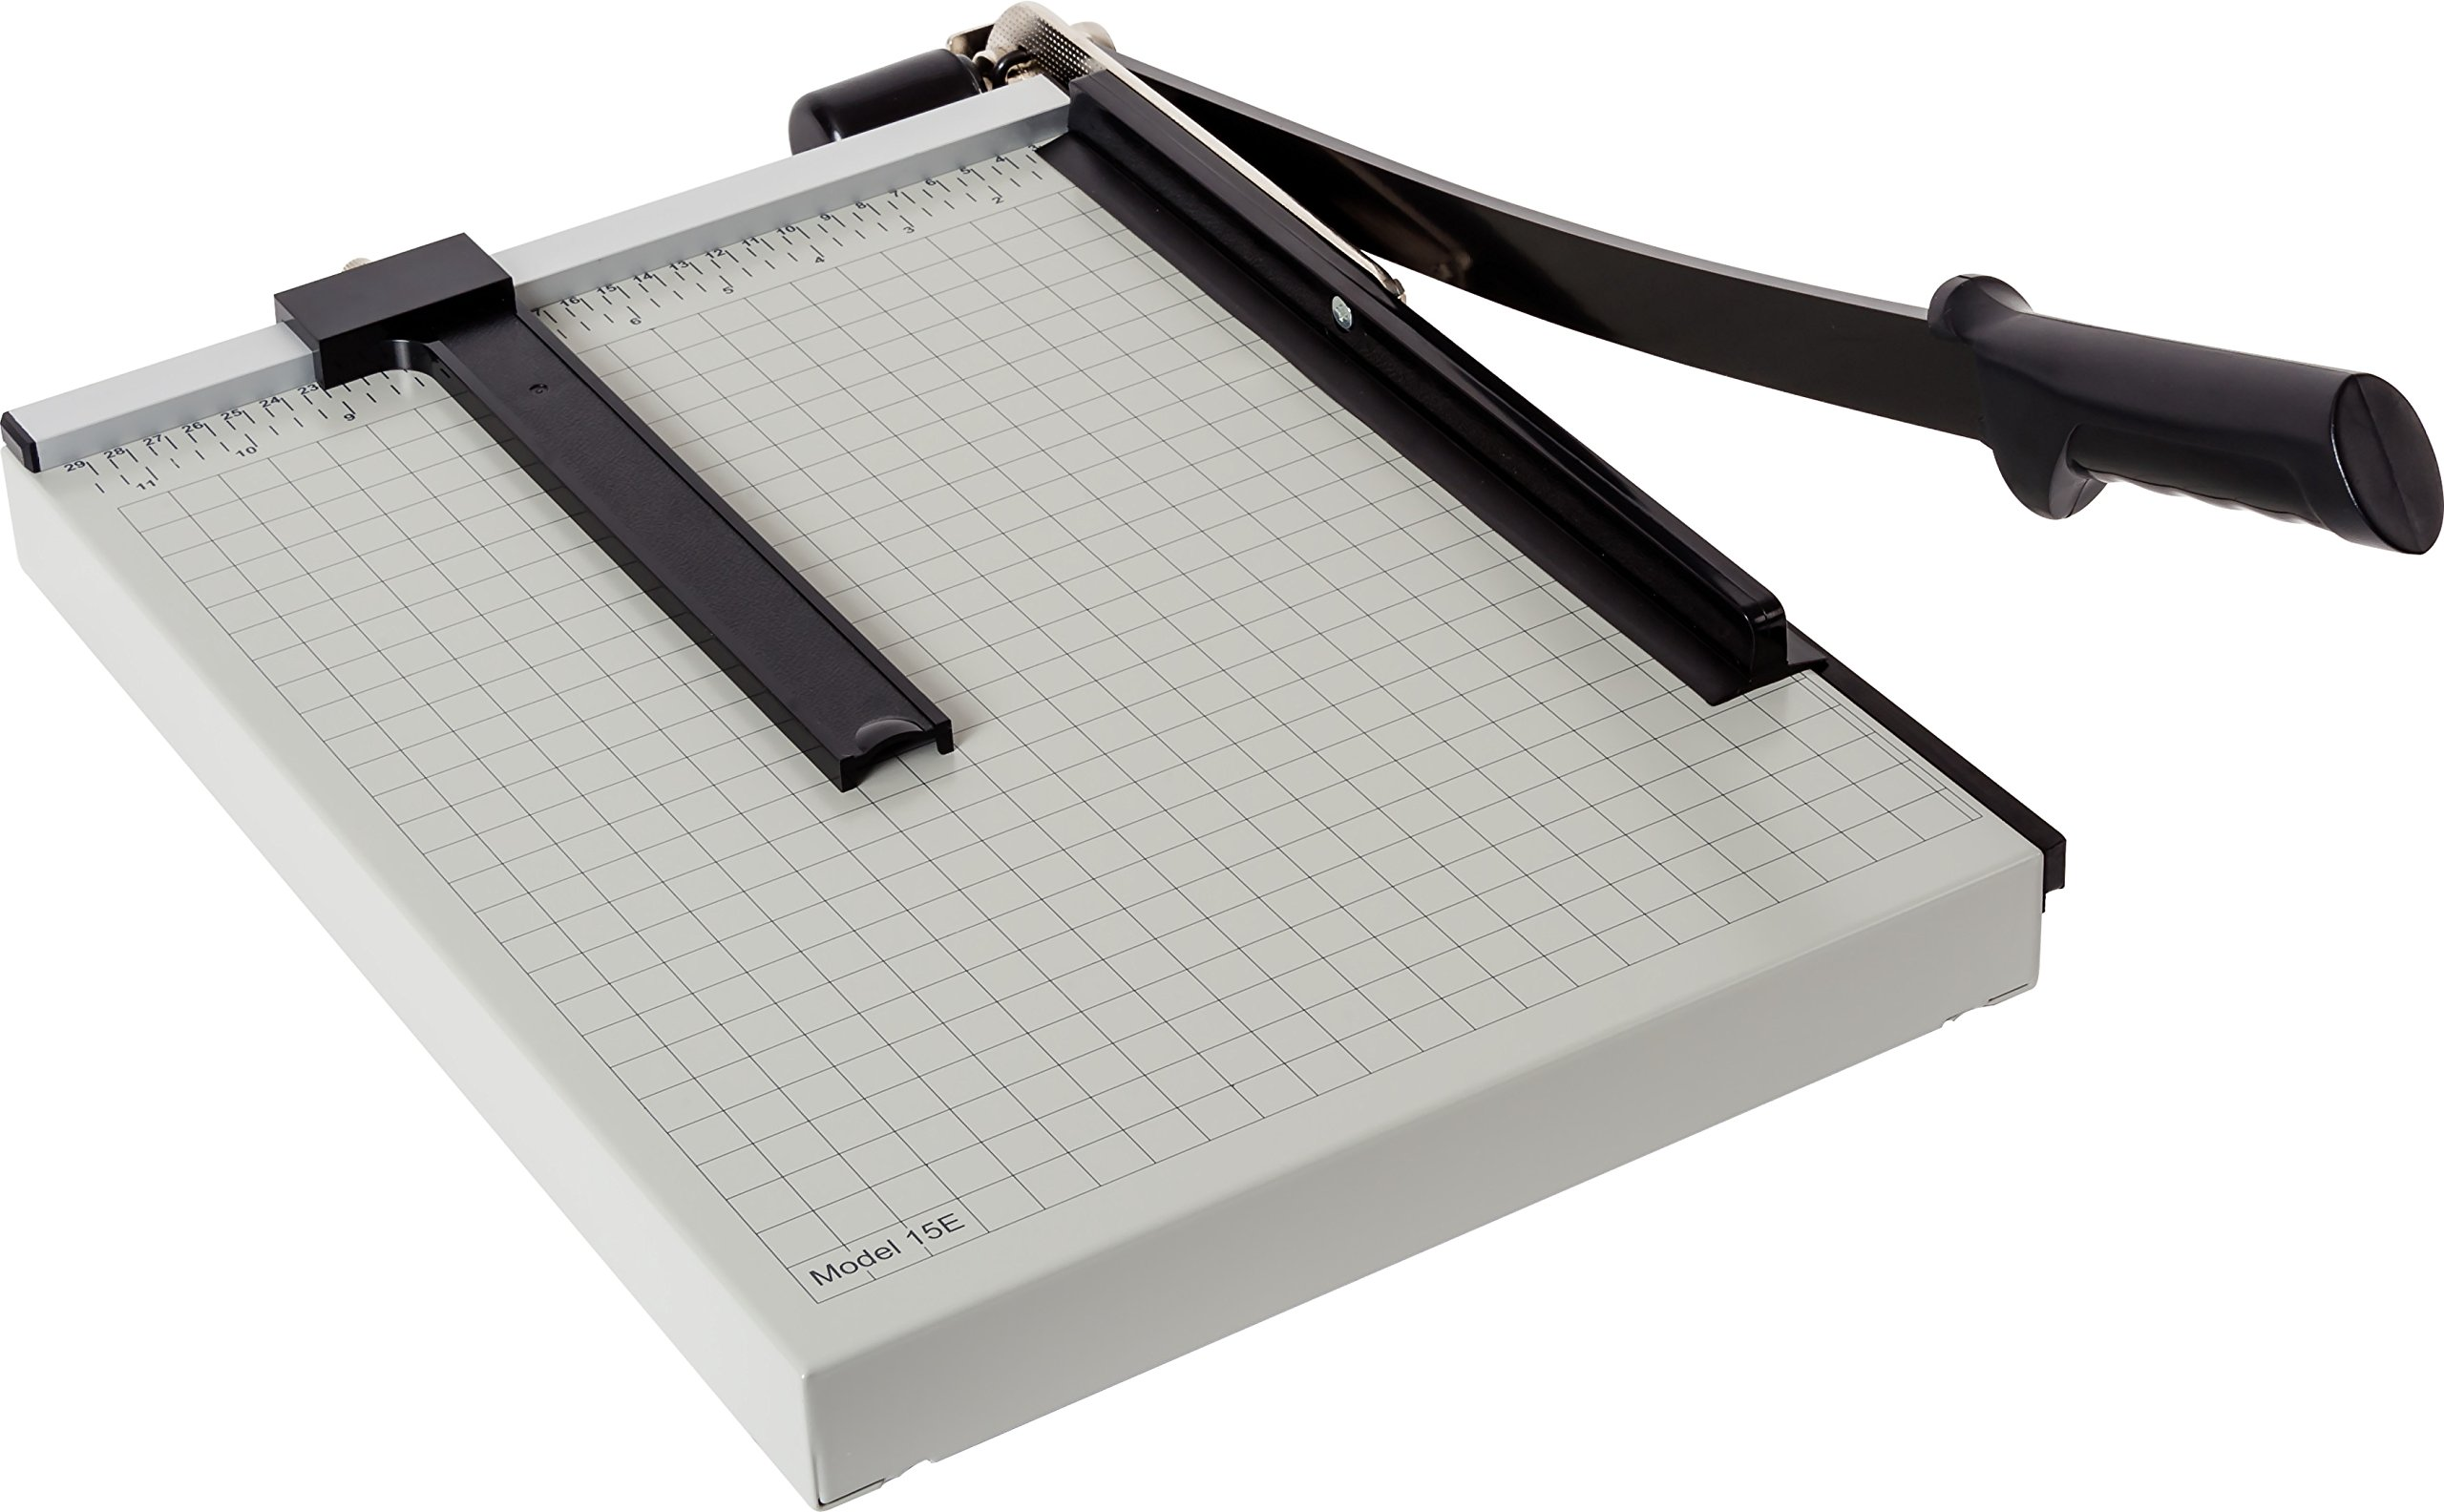 Dahle 15e Vantage Paper Trimmer, 15'' Cut Length, 15 Sheet, Automatic Clamp, Adjustable Guide, Metal Base with 1/2'' Gridlines, Guillotine Paper Cutter